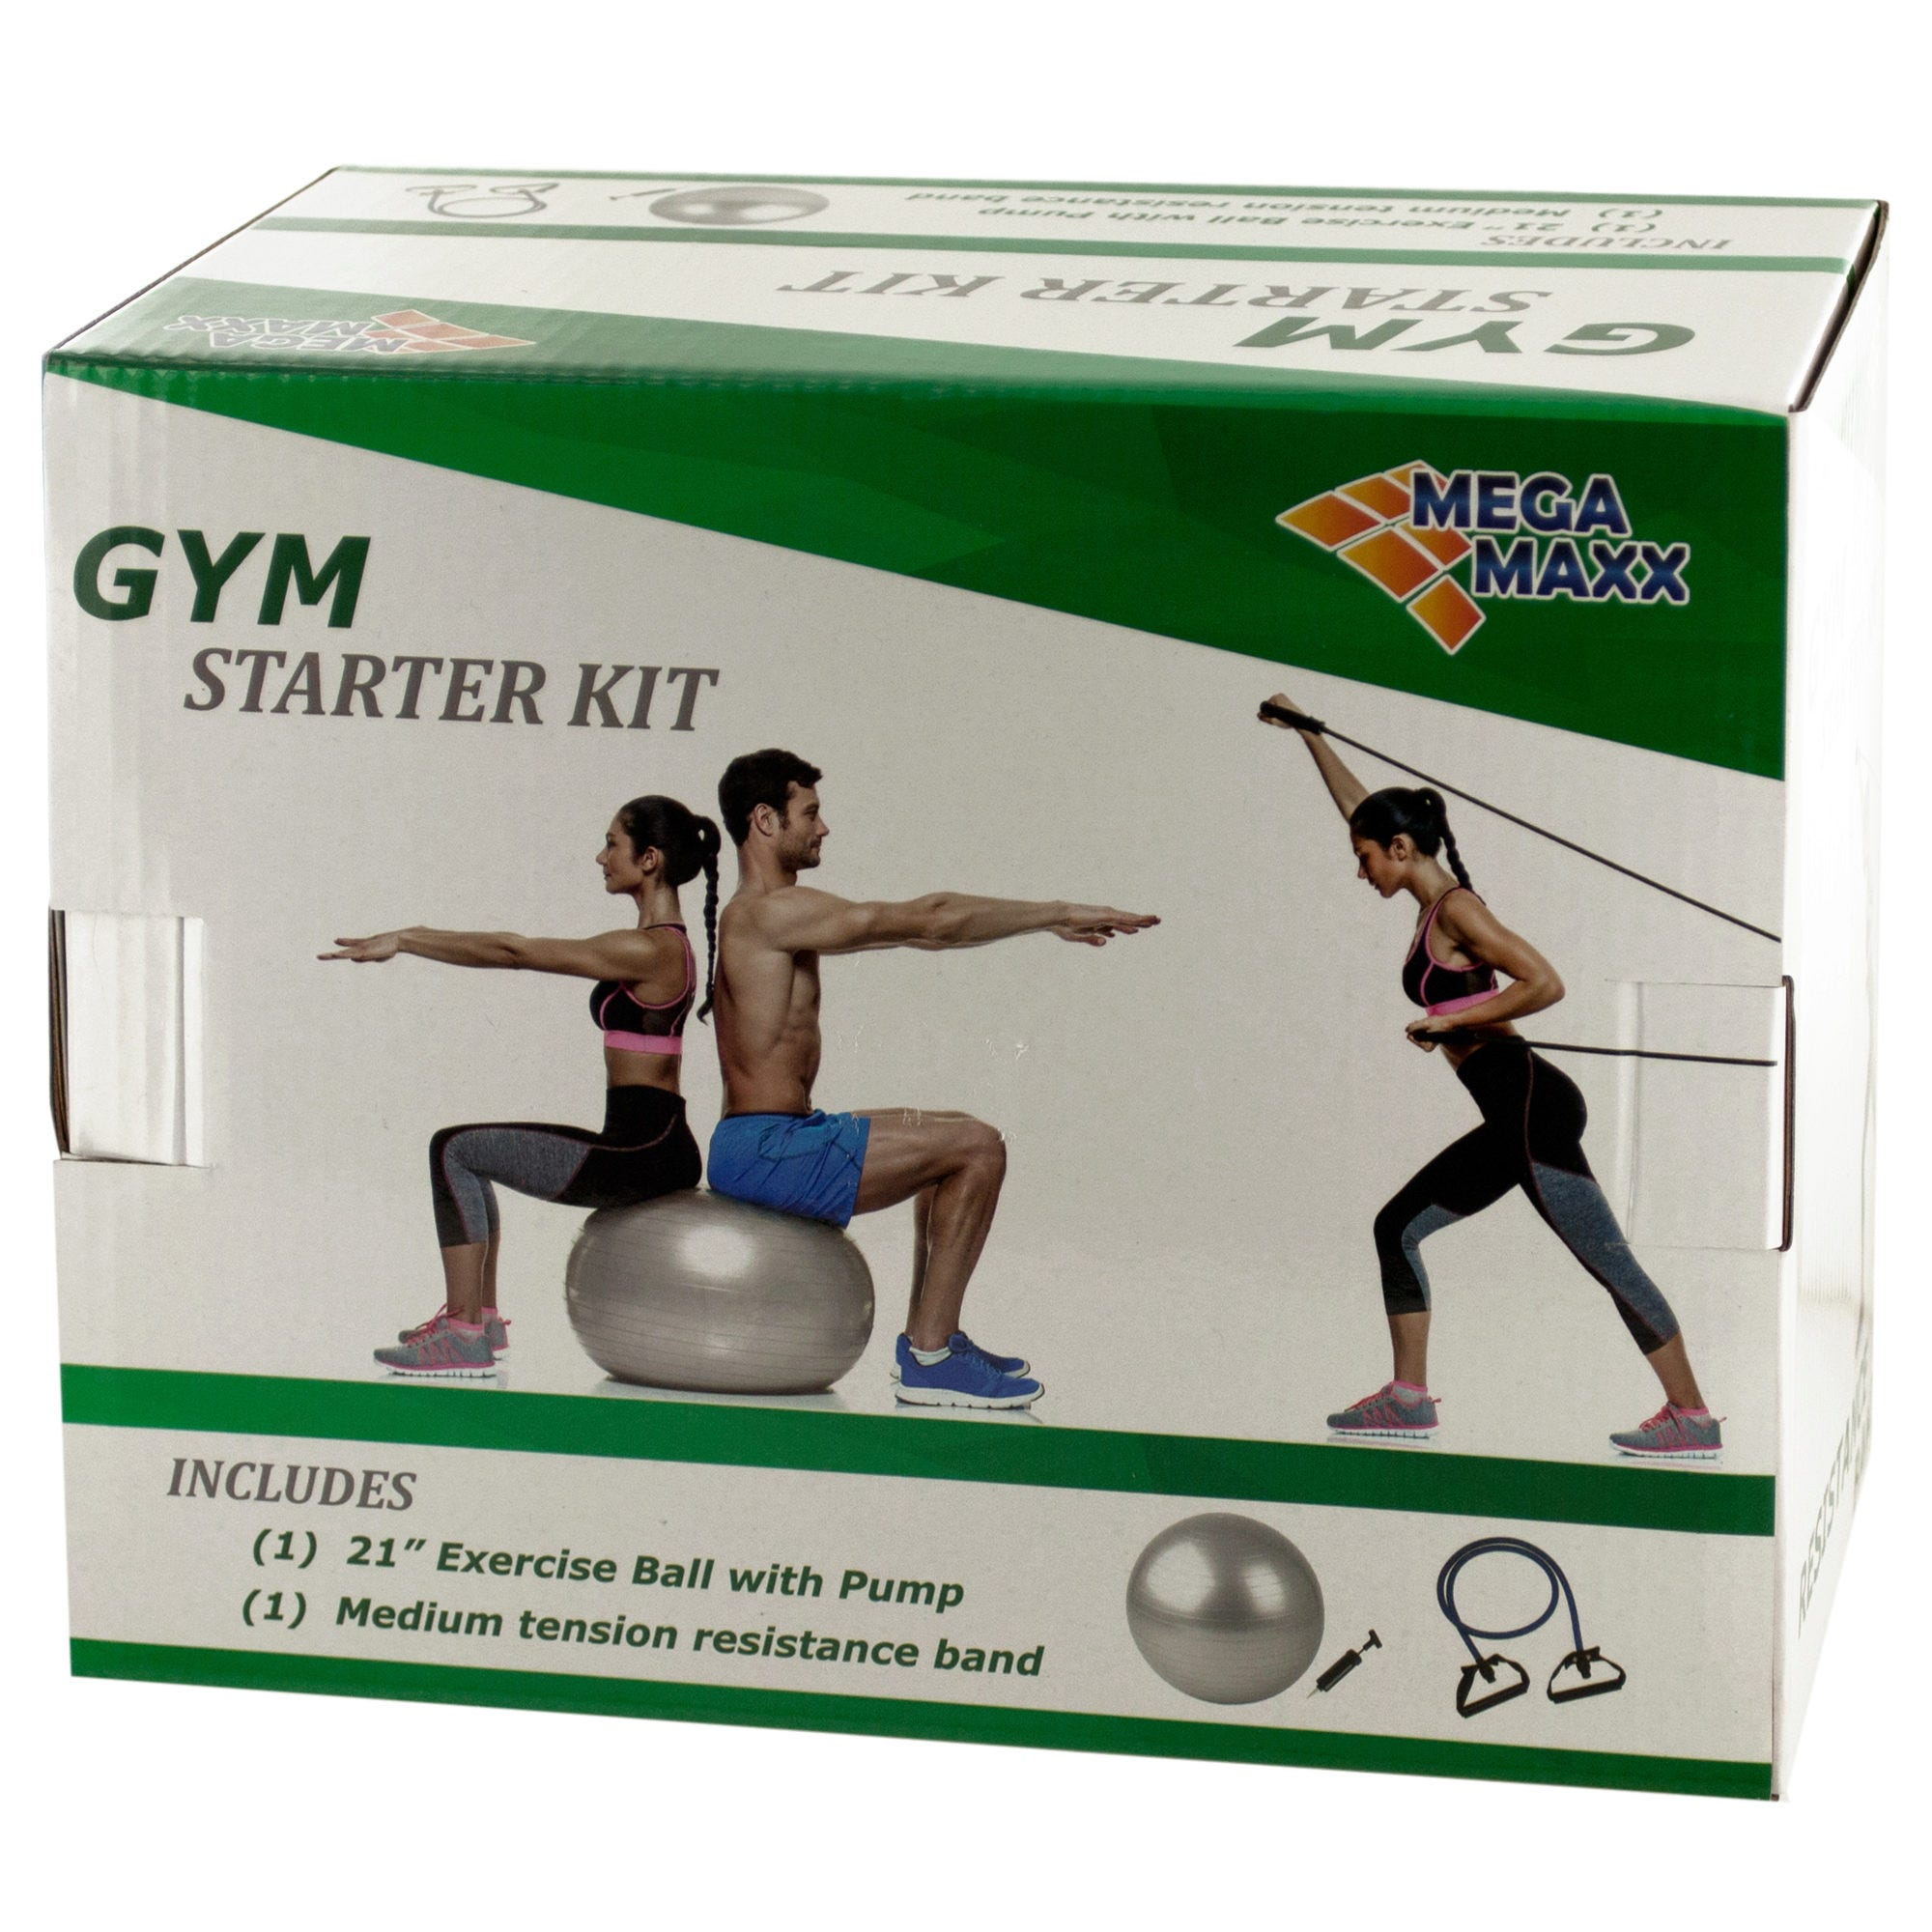 ''Gym Starter Kit with Exercise Ball, Pump & Resistance Band- Qty 4''